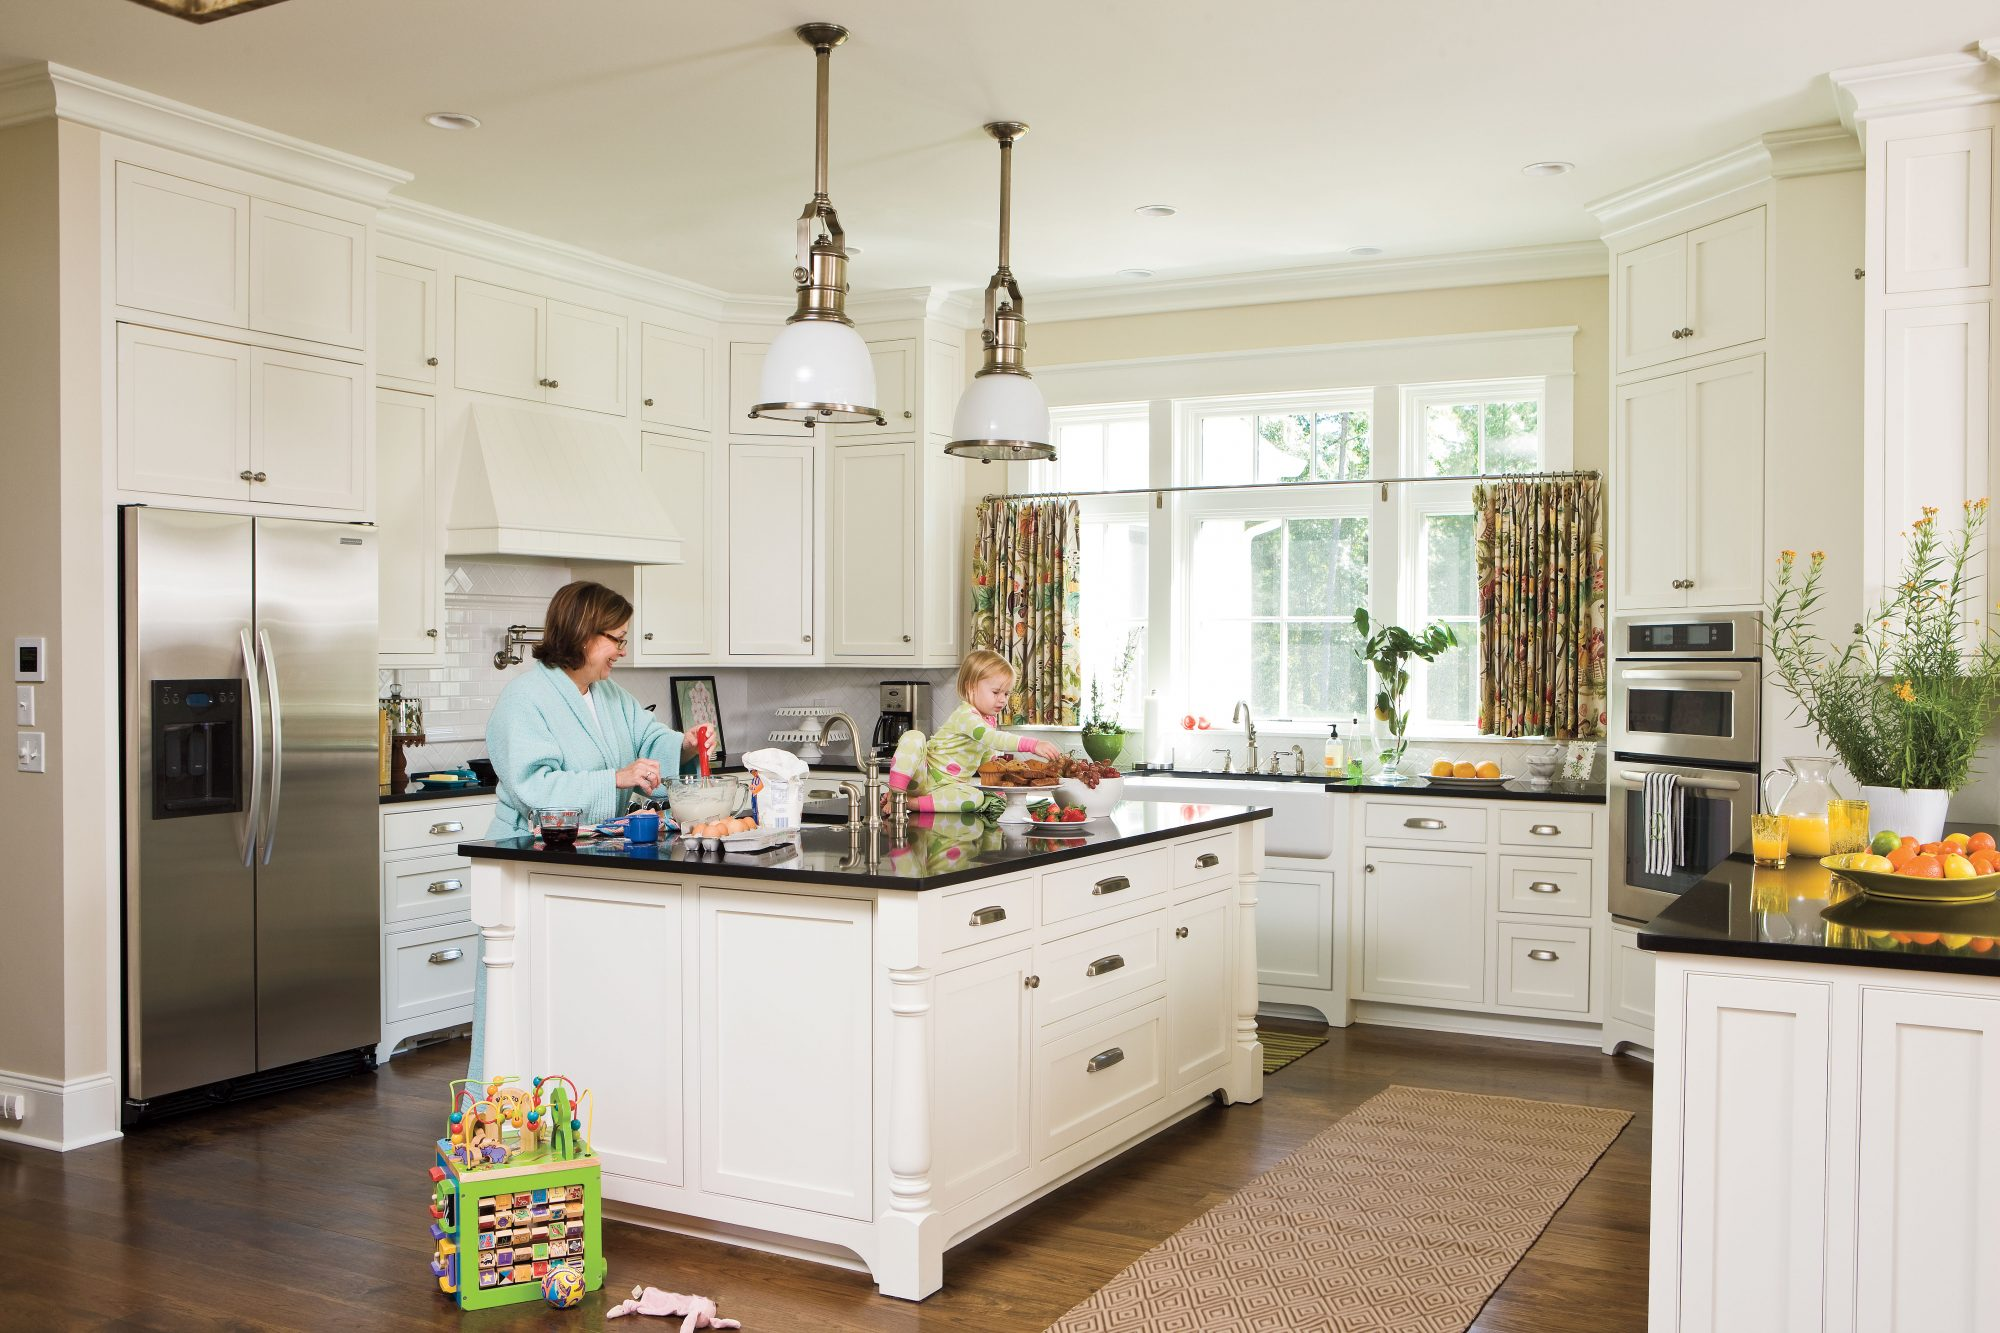 Exellent White Kitchen Pictures Detailed White Kitchen Pictures And Designs